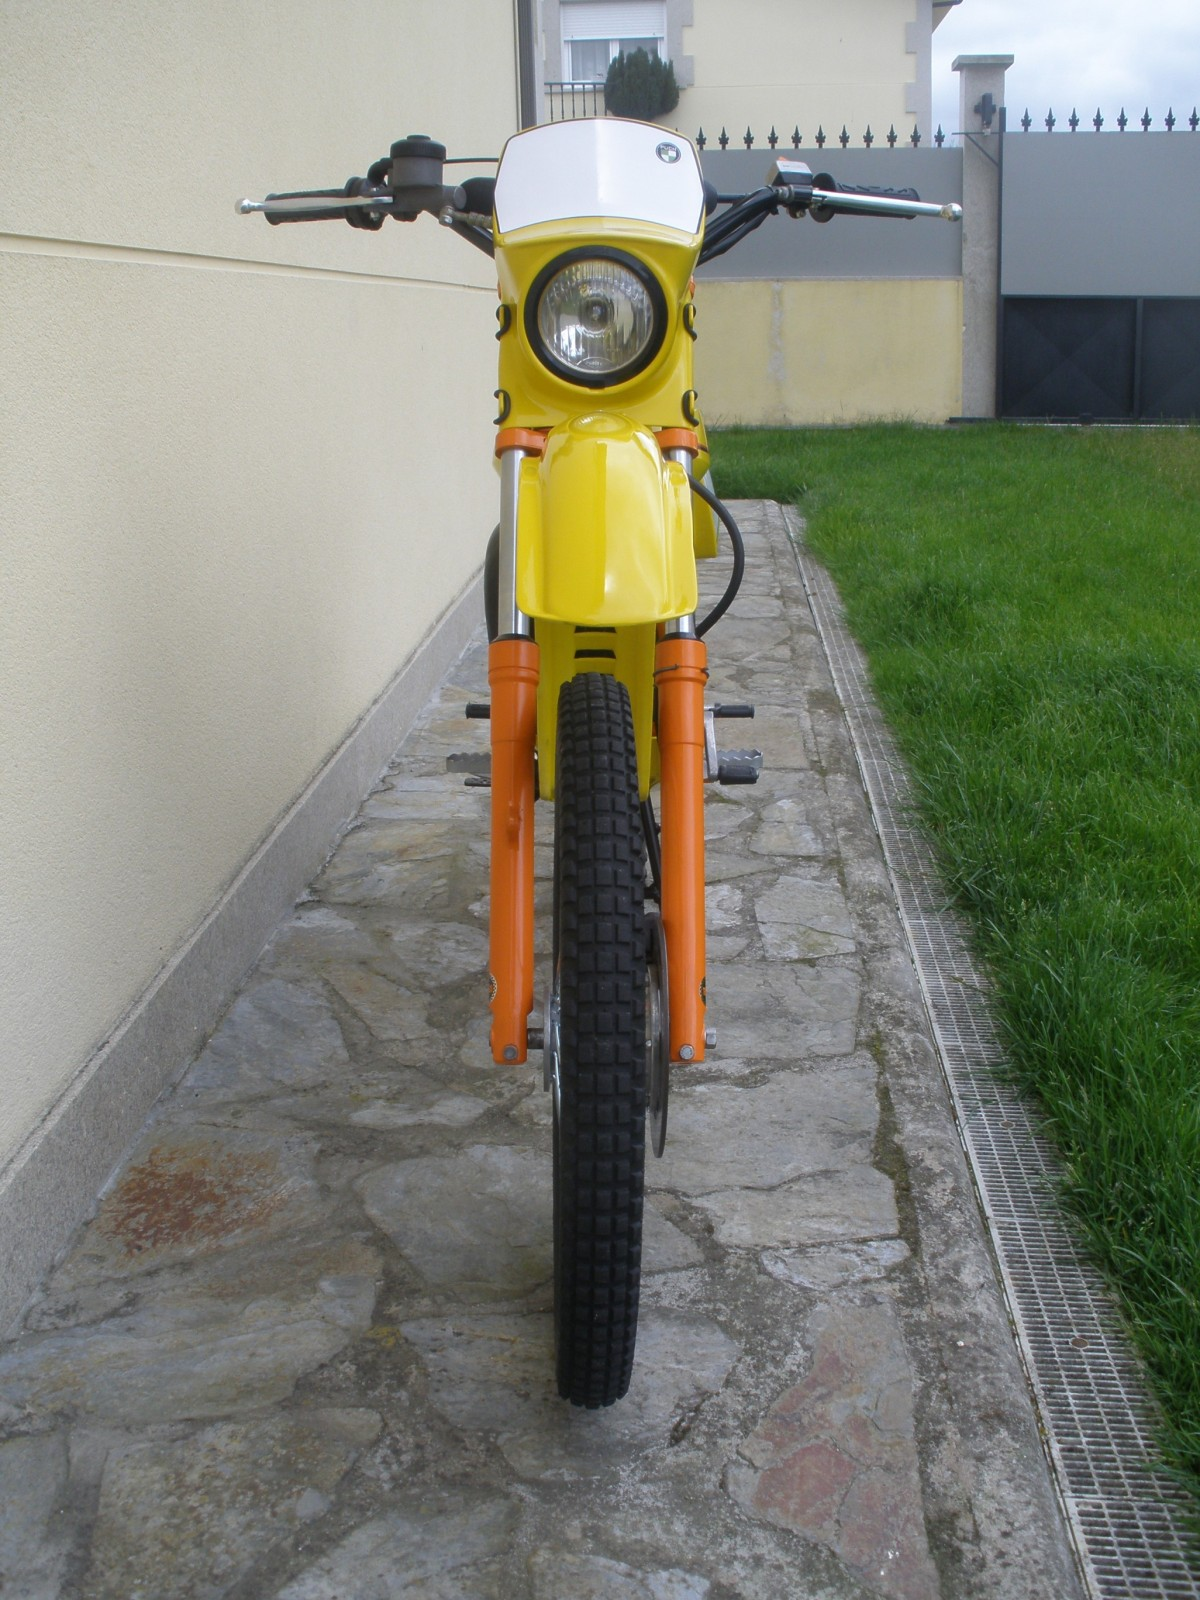 Puch Condor MD 2m5ldg4